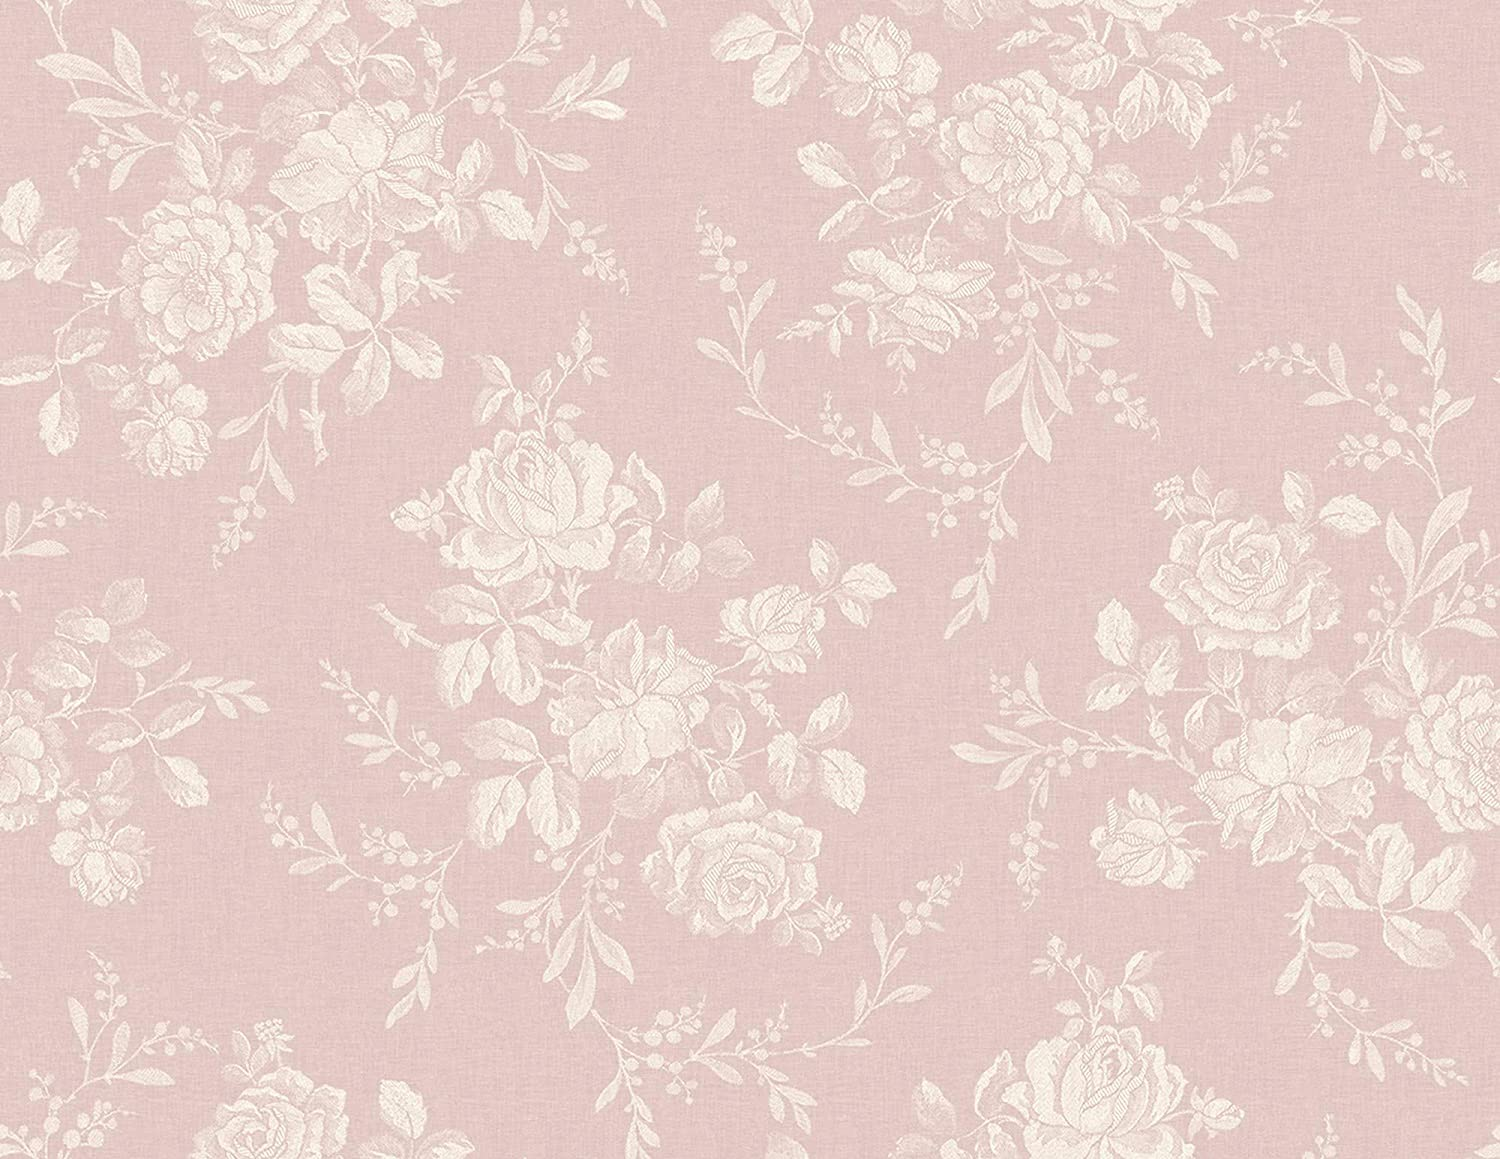 Textile Floral Wallpaper In Rose Fg70201 From Wallquest